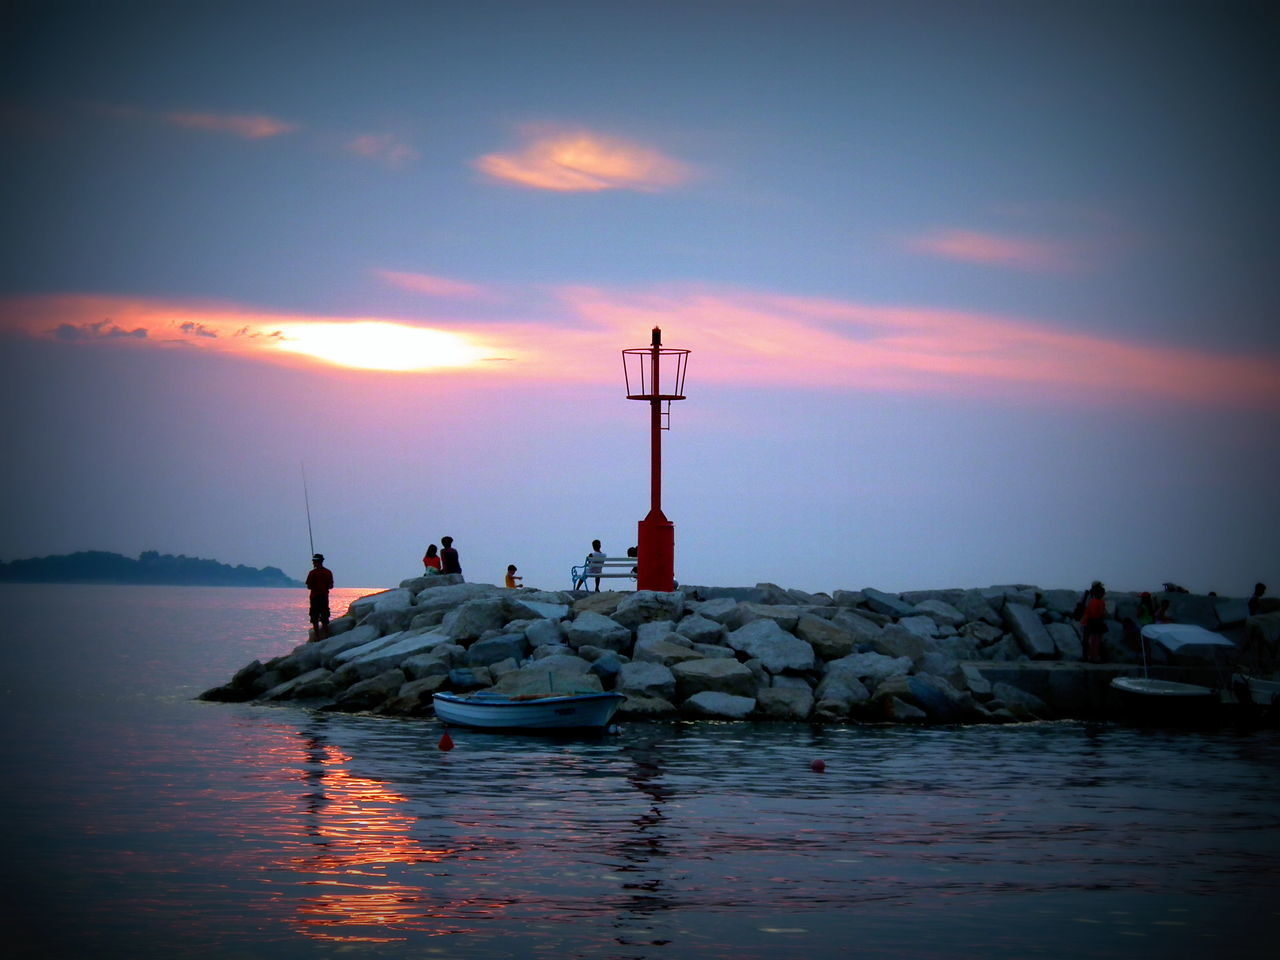 Beauty In Nature Croatia Lighthouse Nature Sea Seaside Sky Sun Sunset Tranquility Water Waterfront Neighborhood Map Sommergefühle Sommergefühle